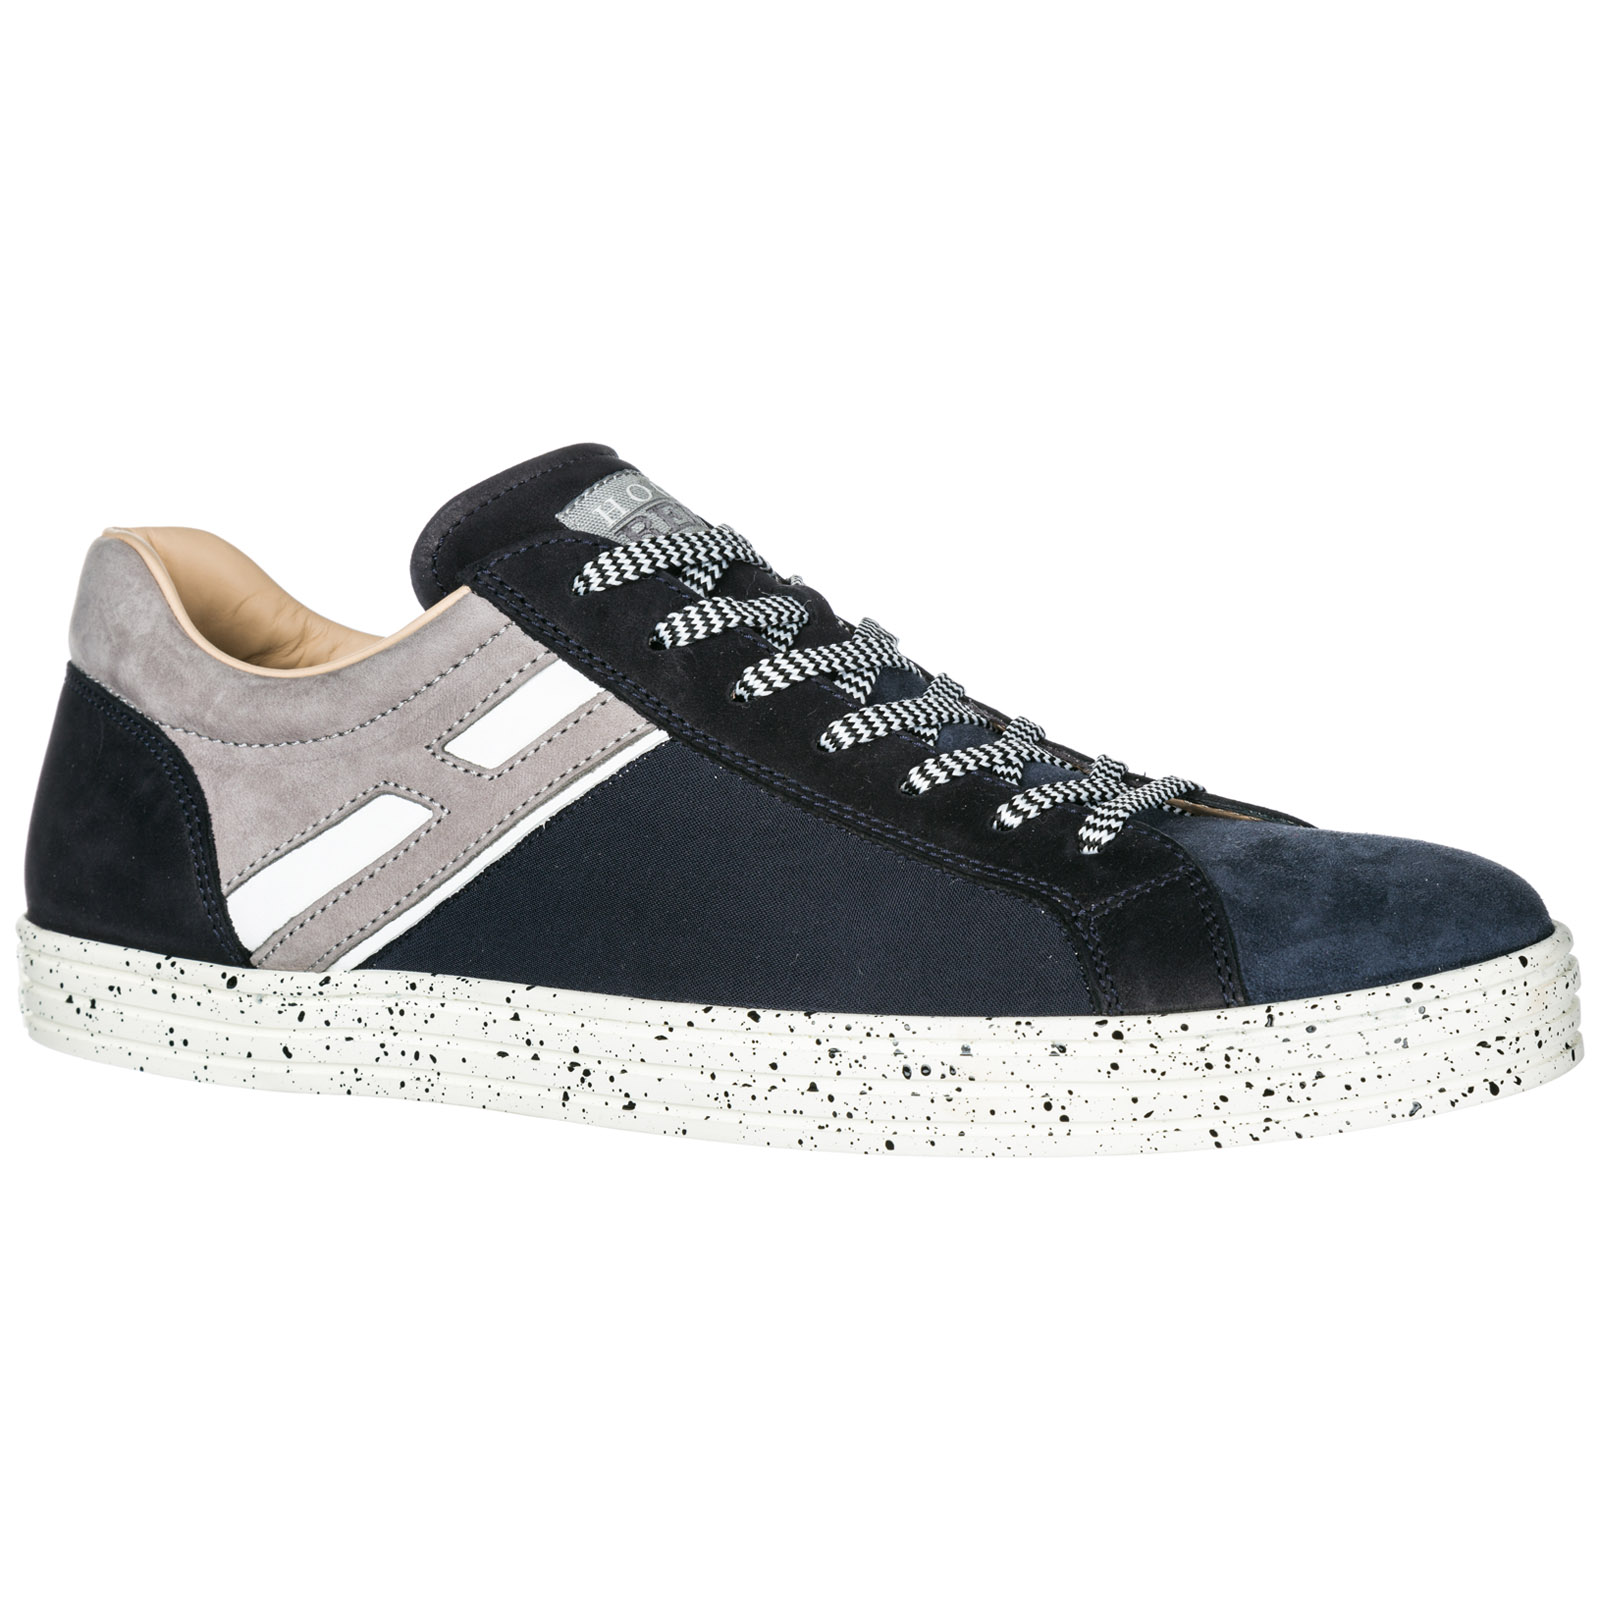 975216e70919 Sneakers Hogan Rebel R141 HXM1410O201C818536 blu denim   FRMODA.com